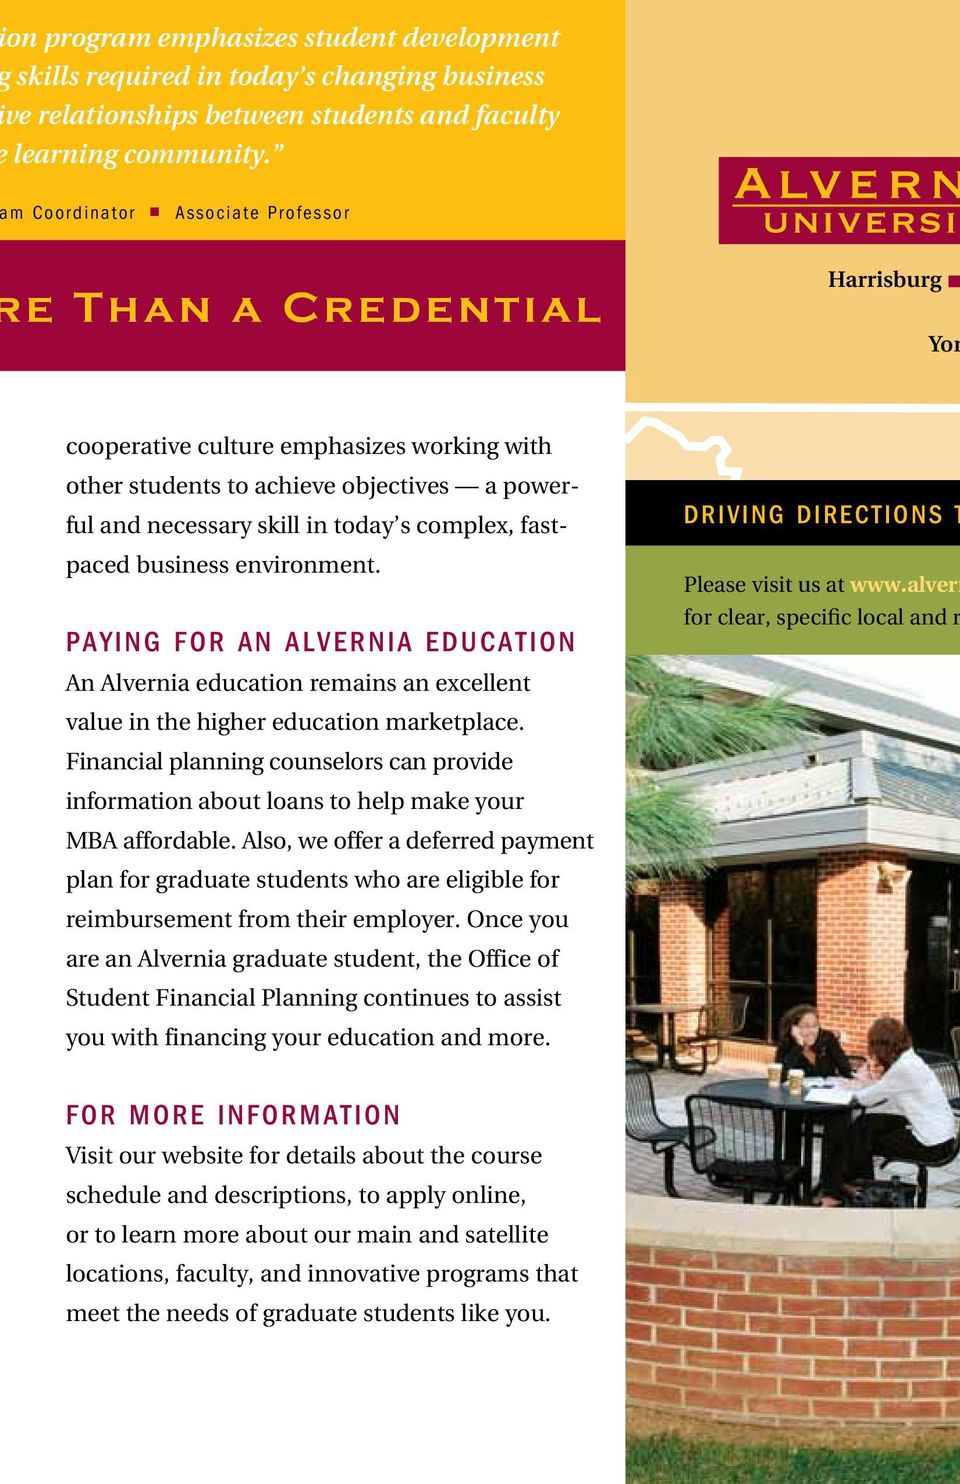 complex, fastpaced business environment. PAYING FOR AN ALVERNIA EDUCATION An Alvernia education remains an excellent value in the higher education marketplace.